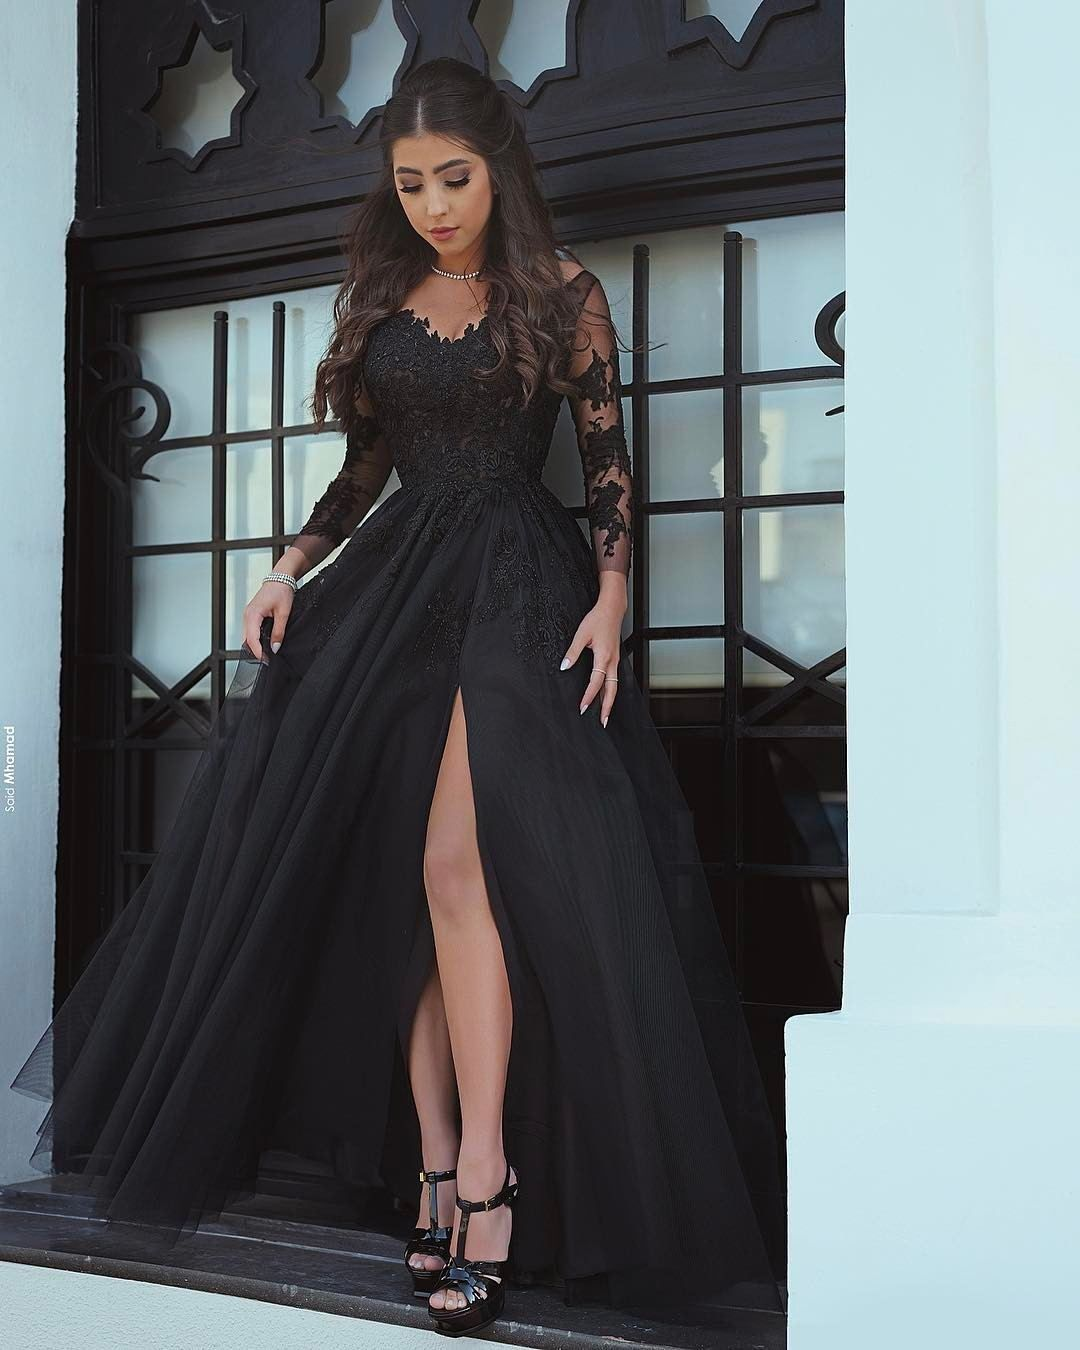 0785f5a809 Said Mhamad 2018 Black Prom Dresses with Long Sleeves Lace Appliques Sexy  Side Slit Party Gowns Women Dresses Ball Gown Prom Dress